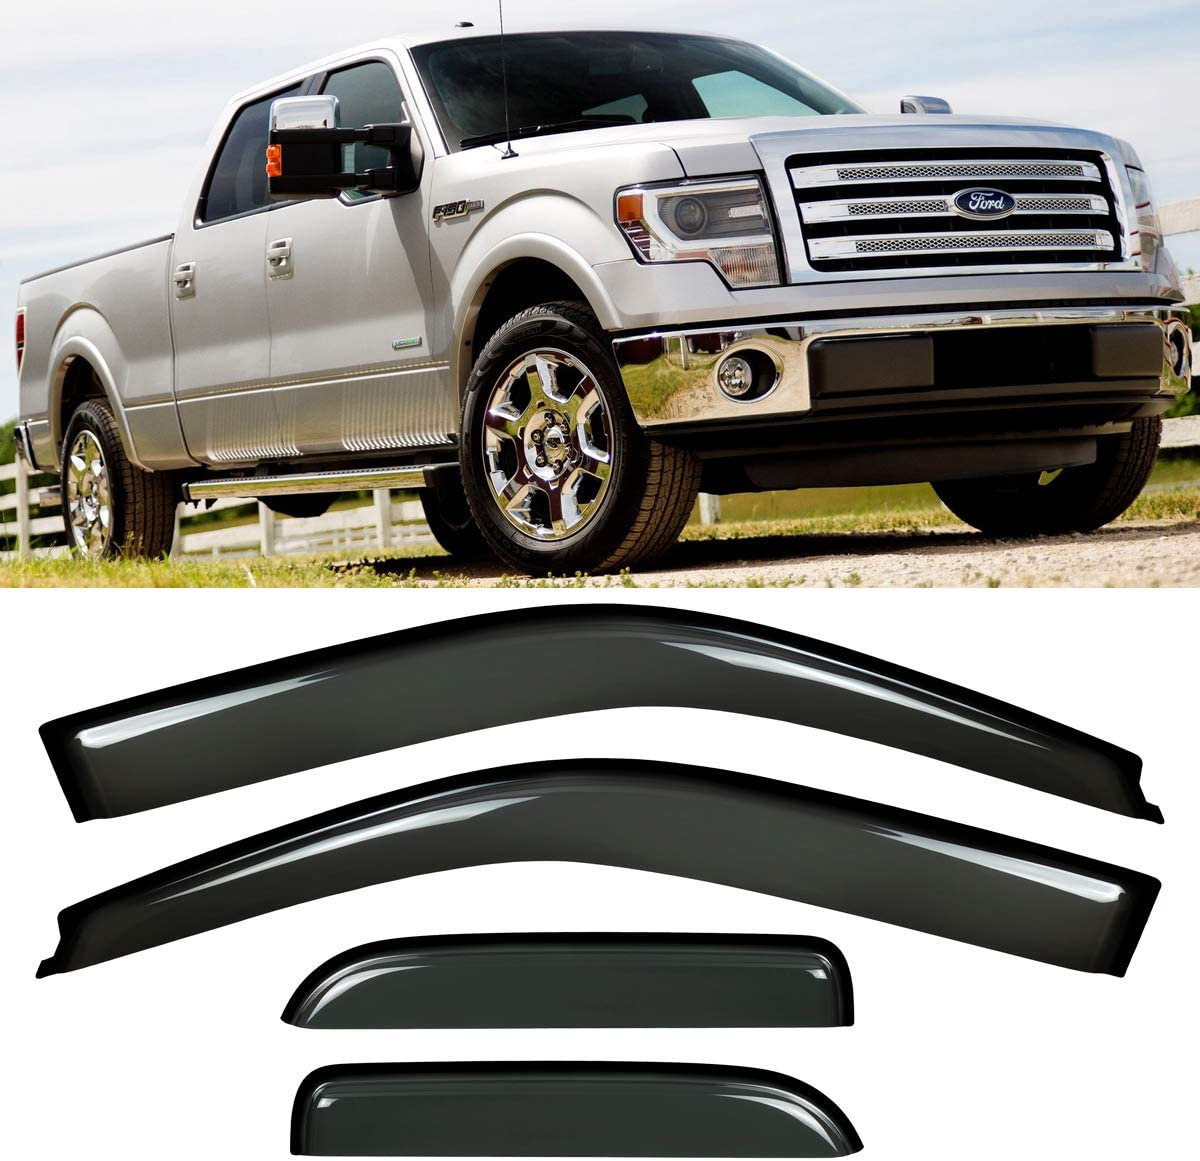 In-Channel Visor Wind Deflector Light Tint For Ford F-150 Regular Cab 97-03 2pcs